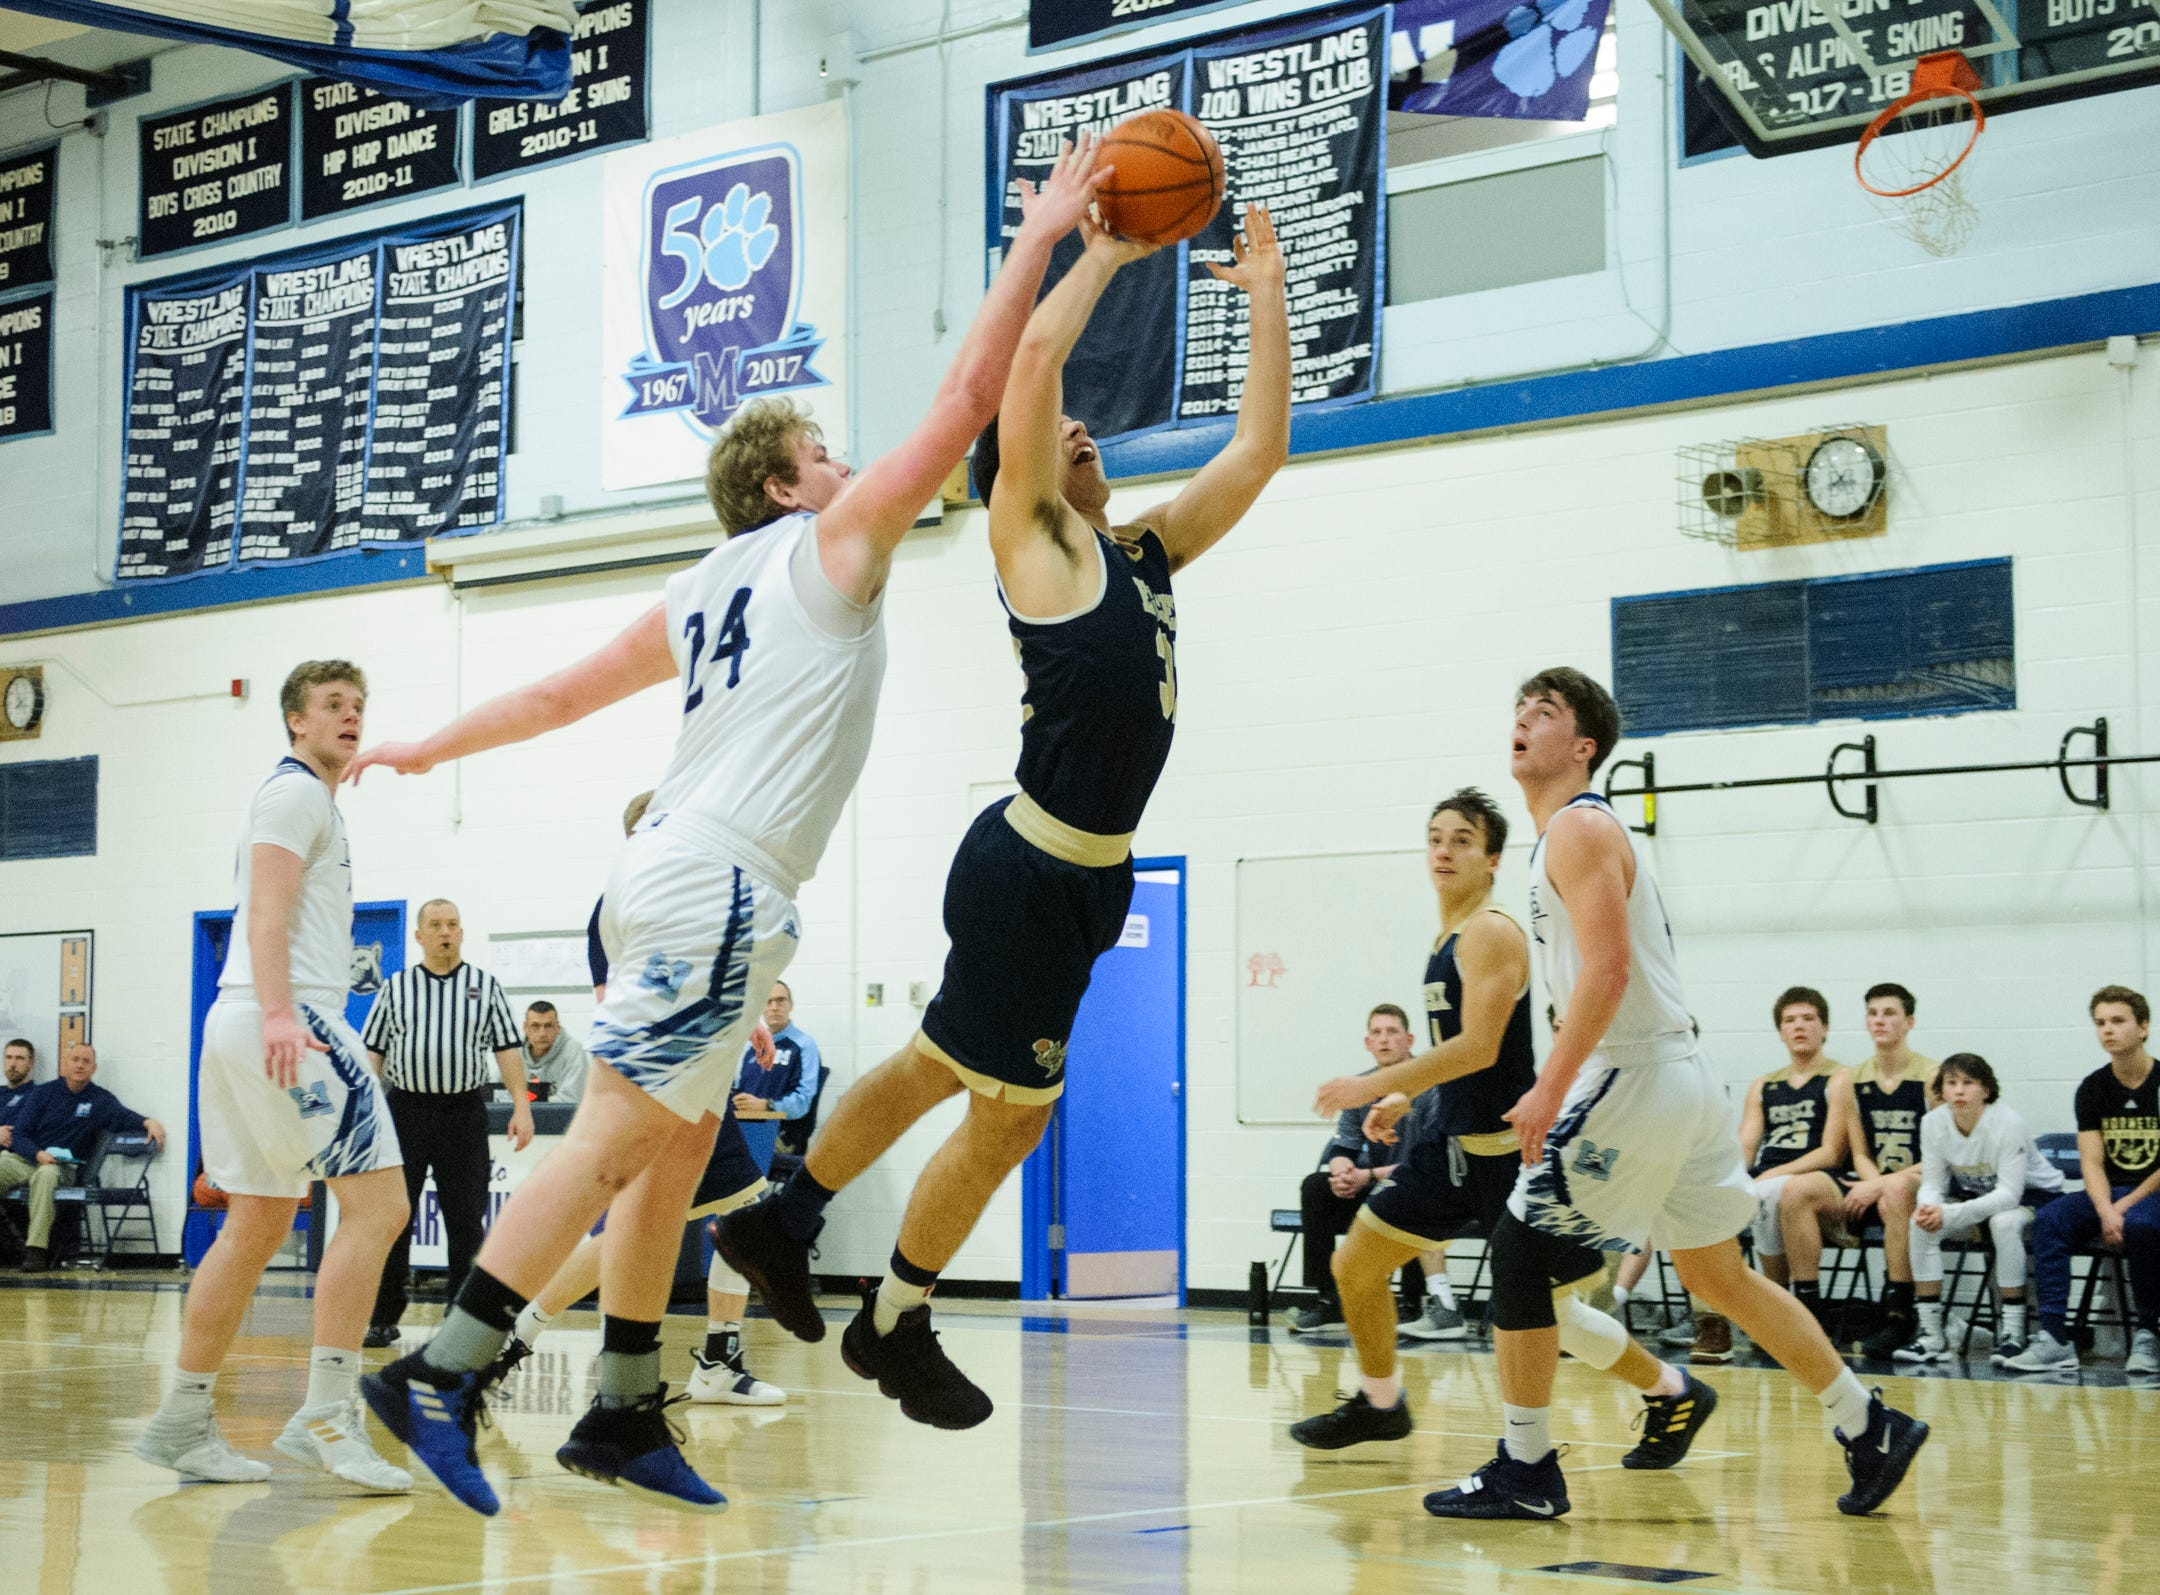 MMU's Mark Howland (24) blocks the shot by Essex's Adin Peco (32) during the boys basketball game between the Essex Hornets and the Mount Mansfield Cougars at MMU High School on Wednesday night February 13, 2019 in Jericho, Vermont.